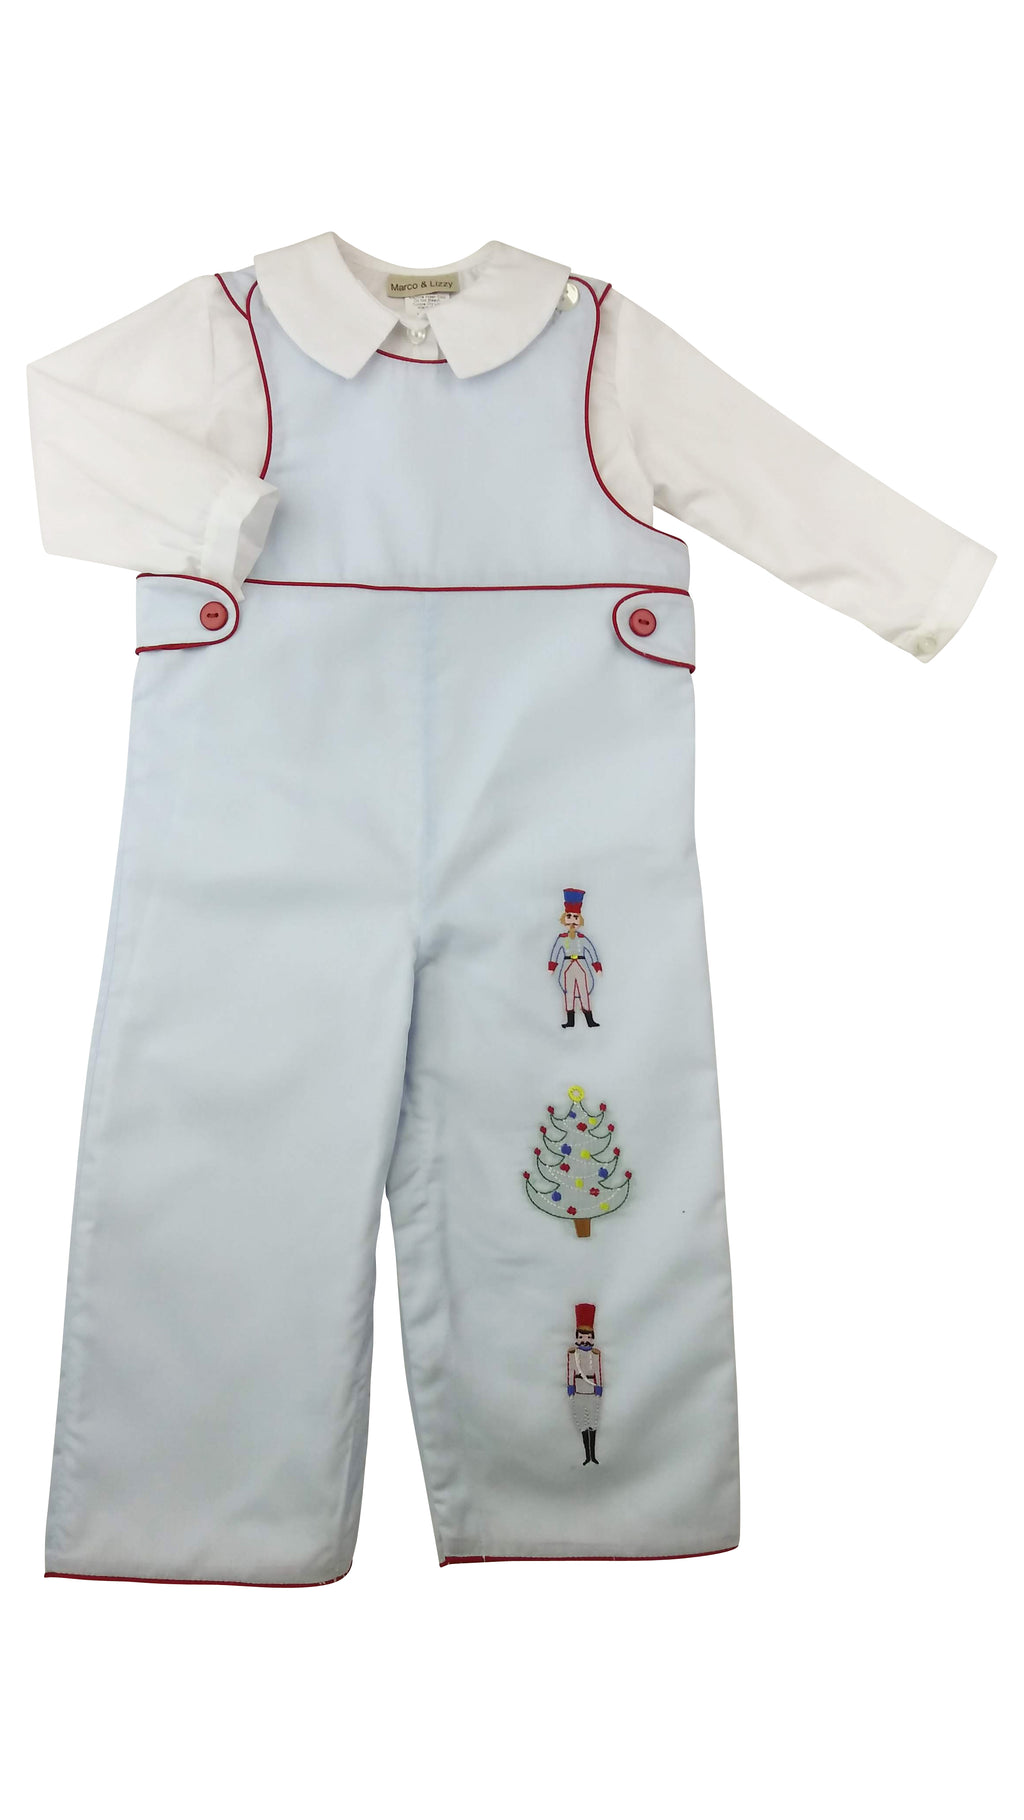 Nutcracker Vintage Look Boy's Overall - Little Threads Inc. Children's Clothing